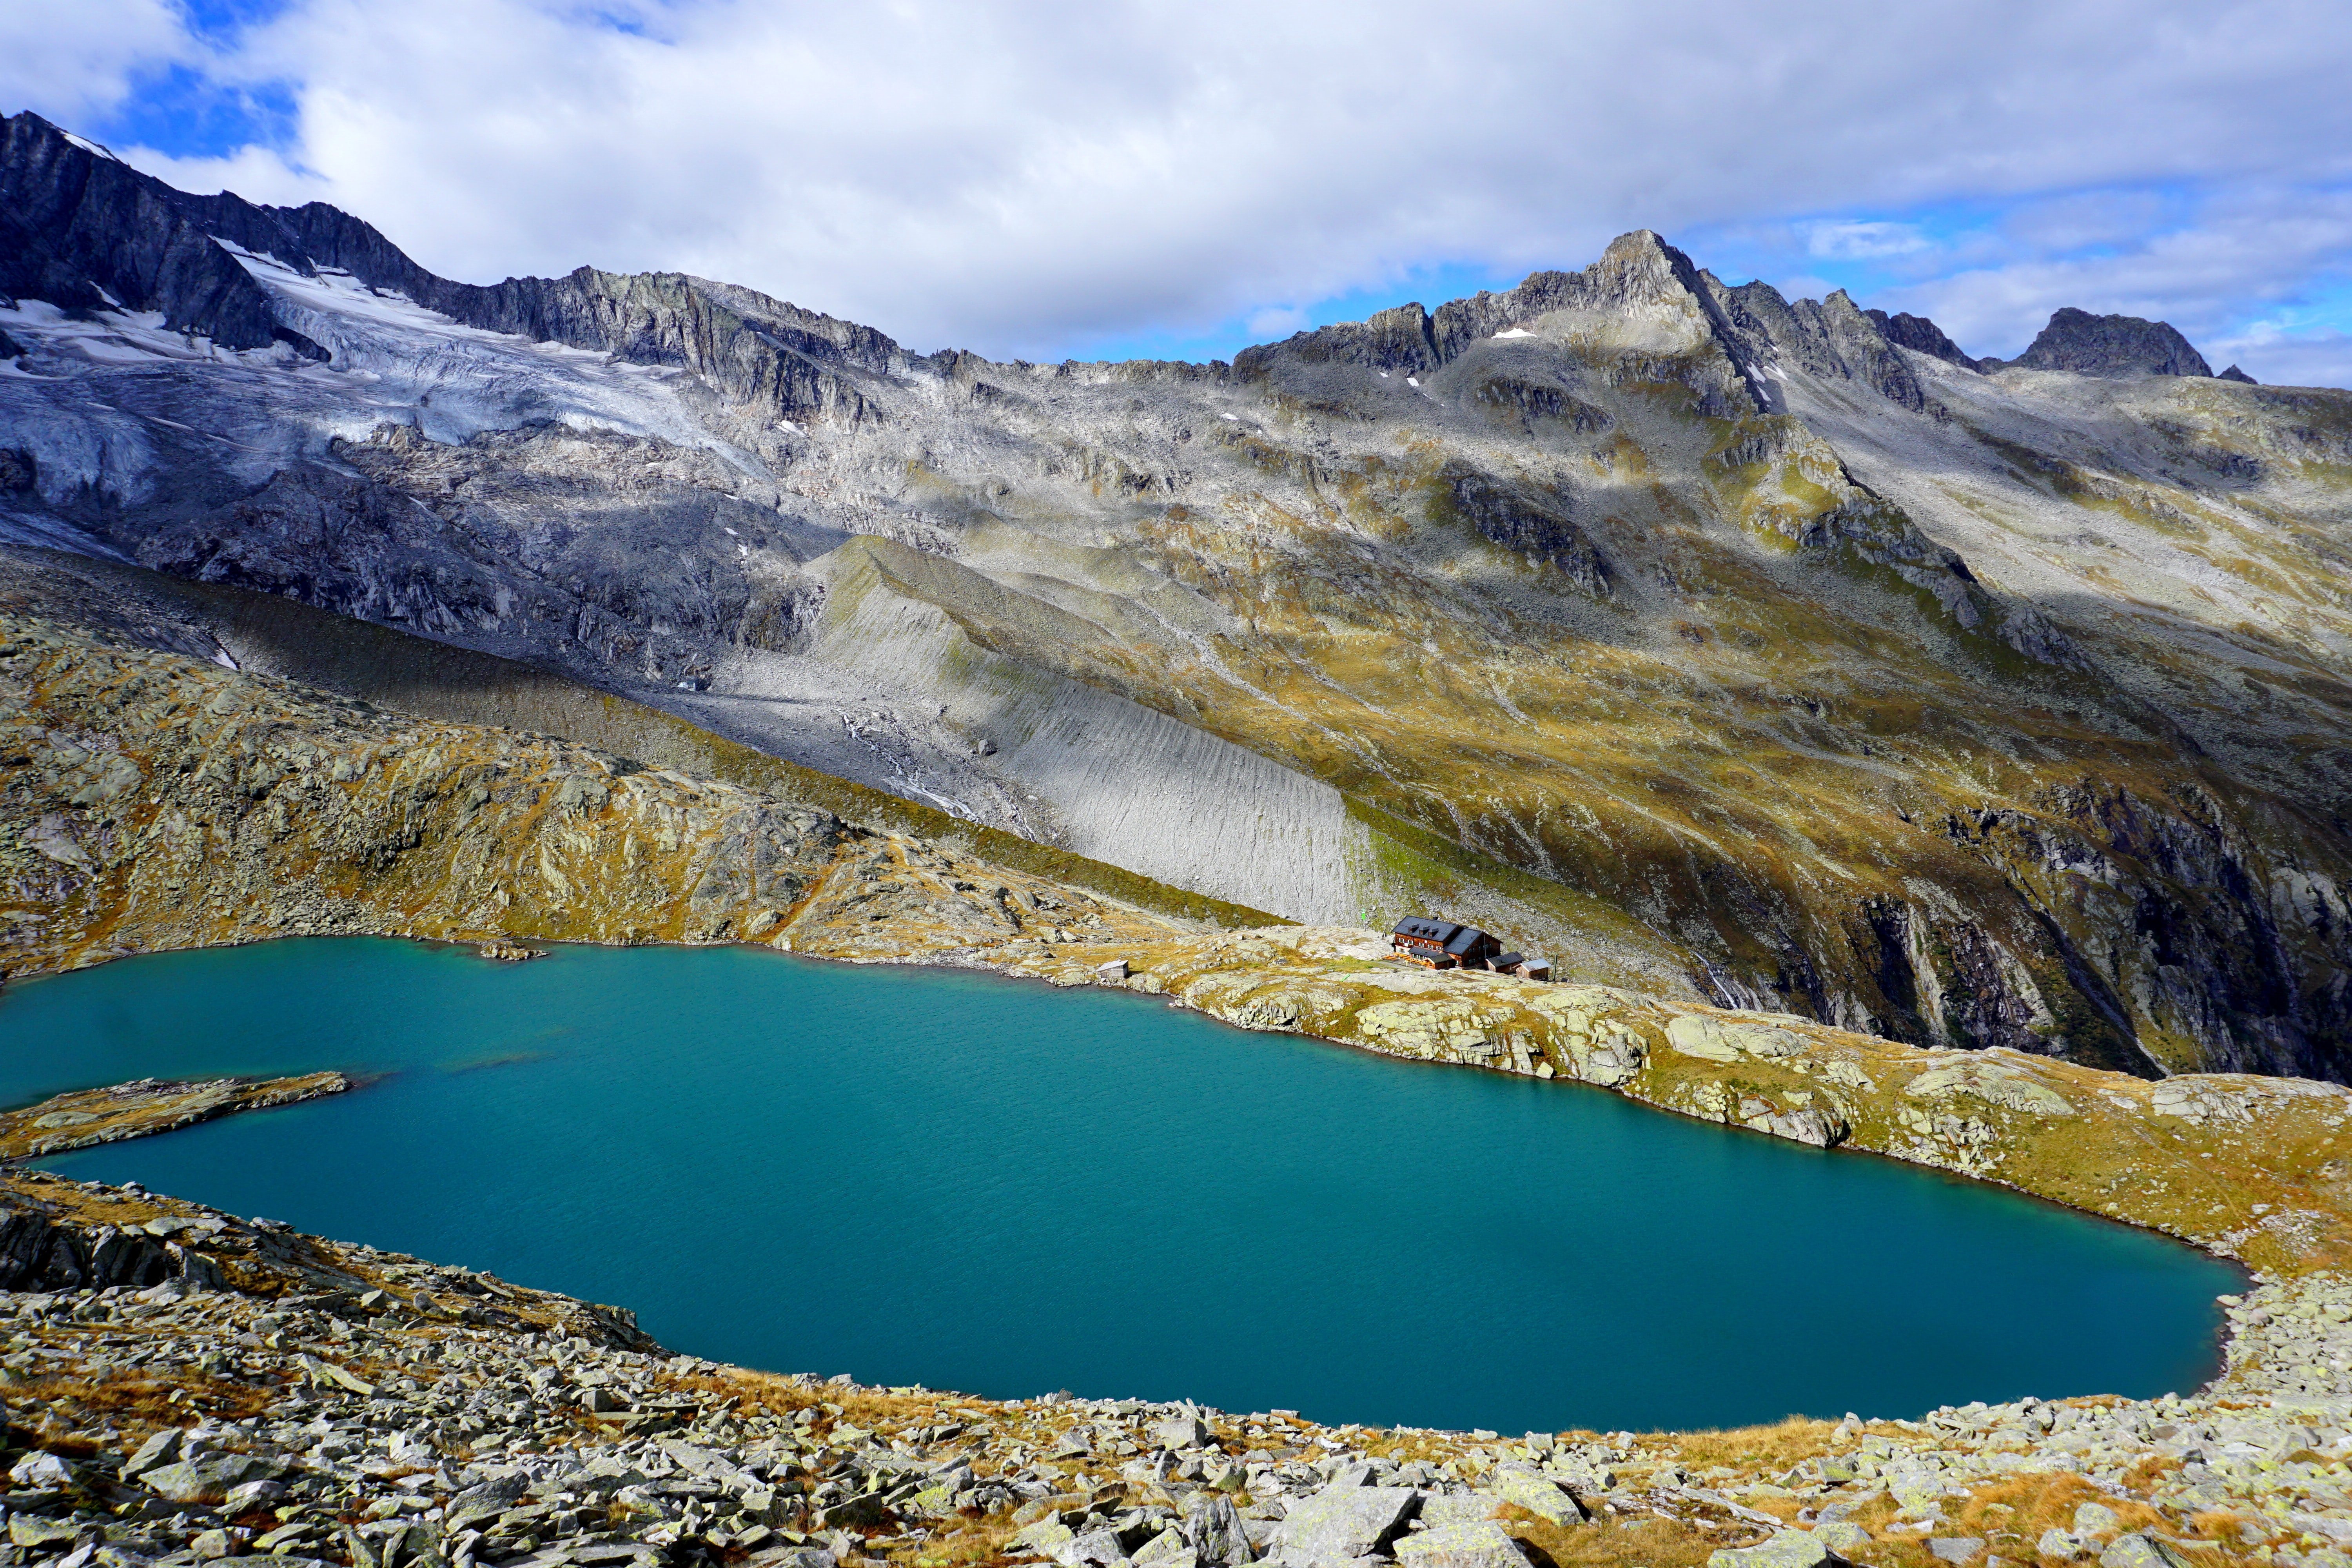 lake surrounded by mountain landscape during daytime